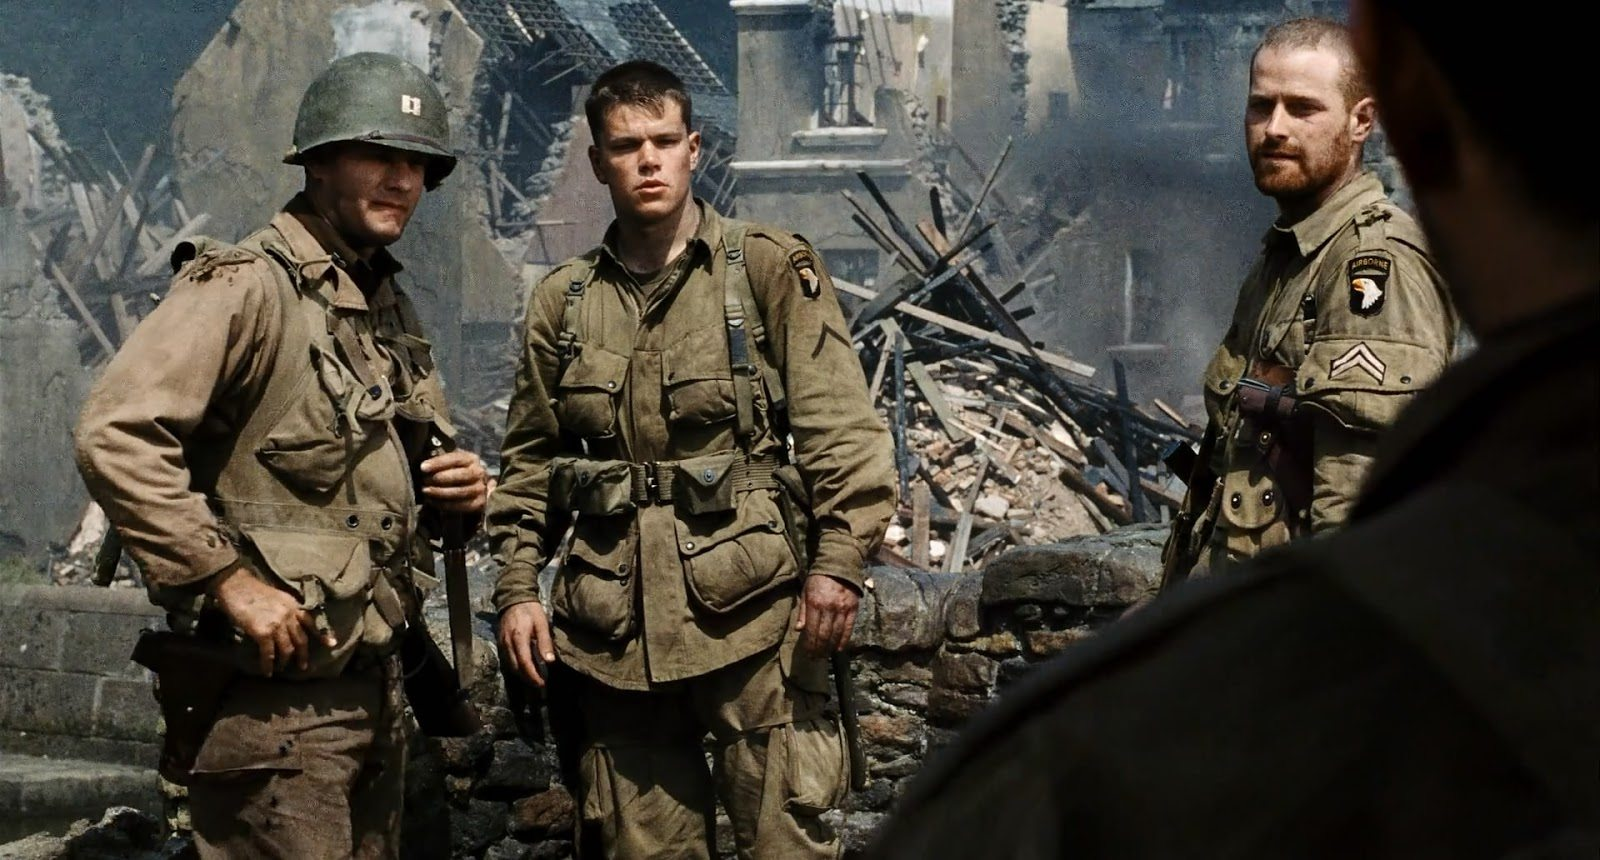 saving private ryan movie review Mr spielberg goes beyond the war movie genre he brings you the war itself  saving private ryan wastes no time on exposition it drops you.